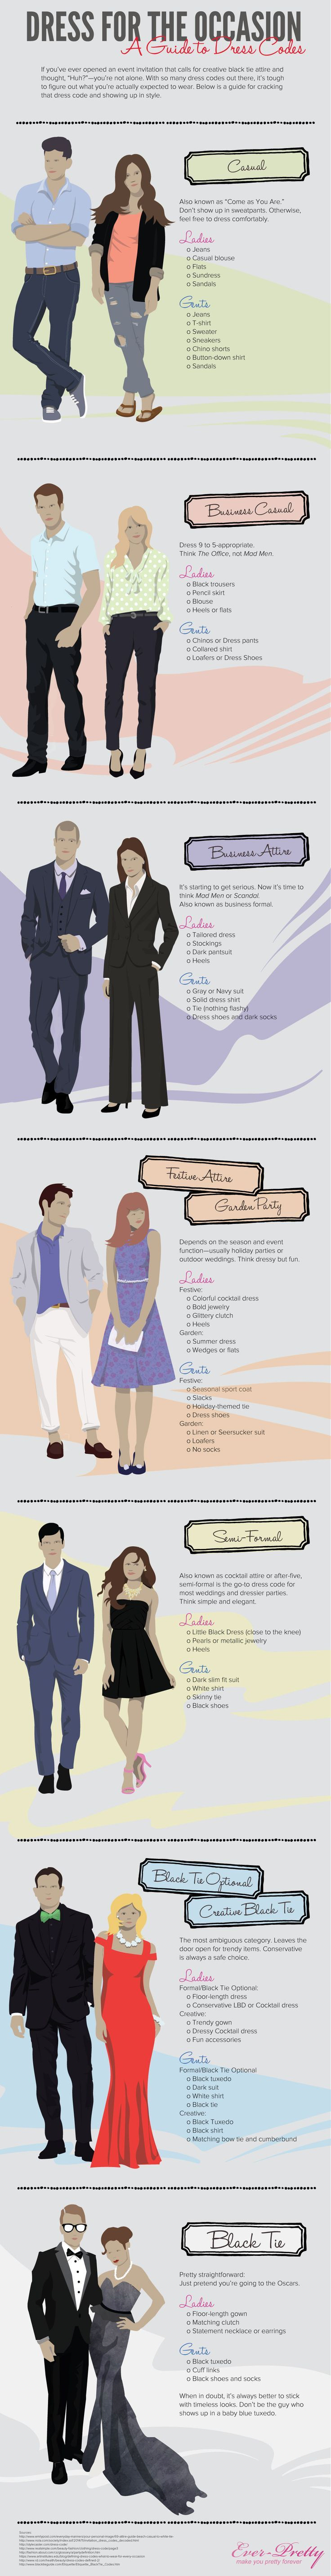 """Dress for the Occasion- A Guide to Dress Codes <a class=""""pintag"""" href=""""/explore/infographic/"""" title=""""#infographic explore Pinterest"""">#infographic</a>"""